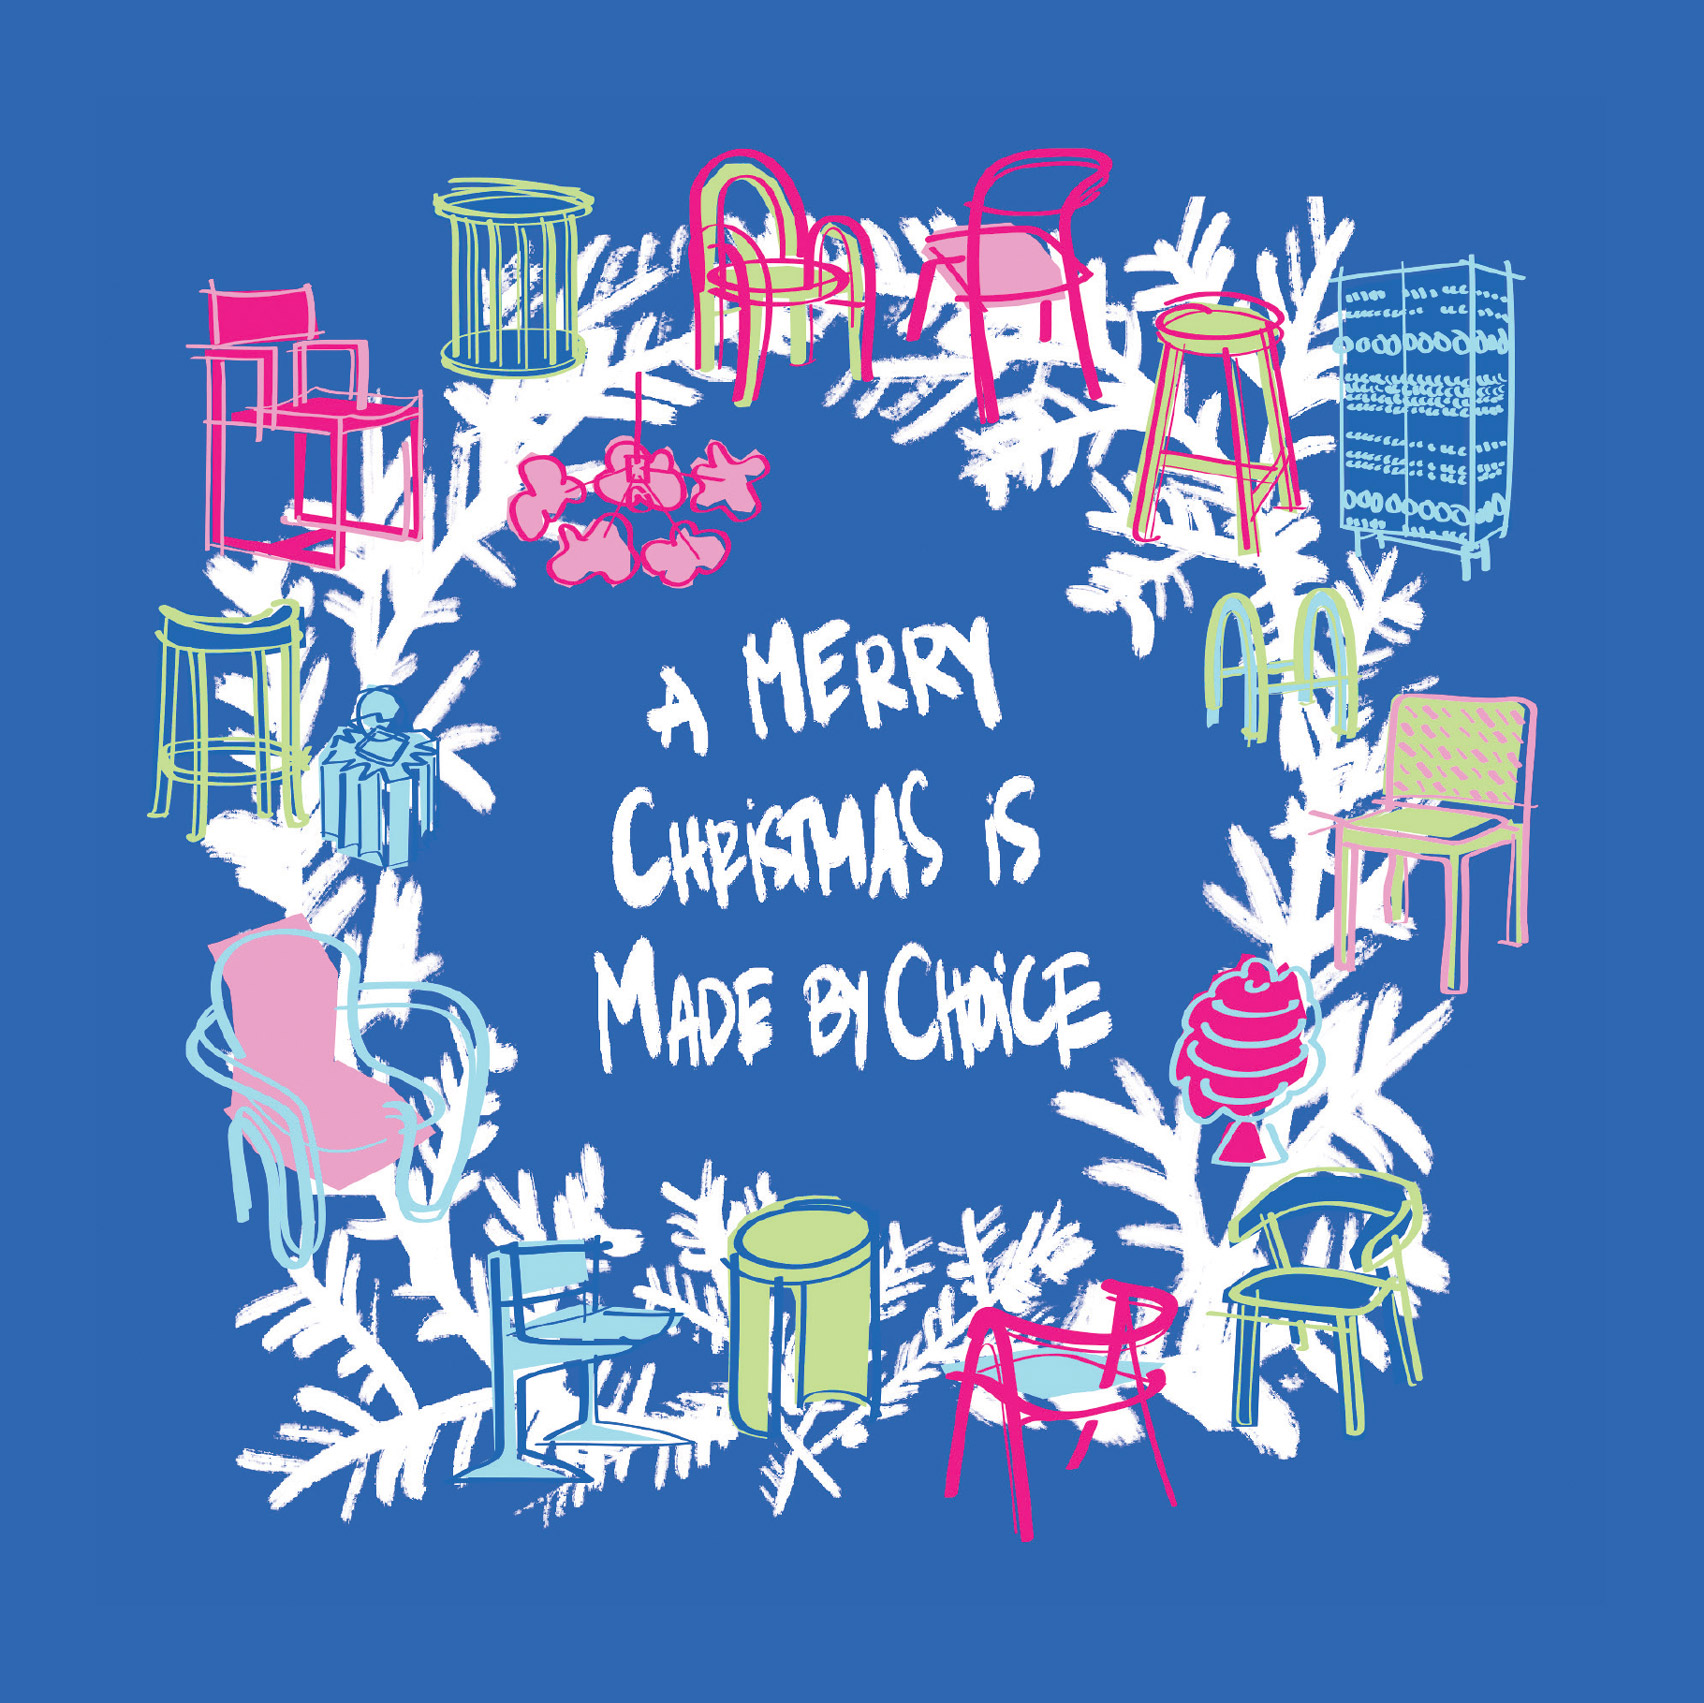 Christmas card by Made By Choice